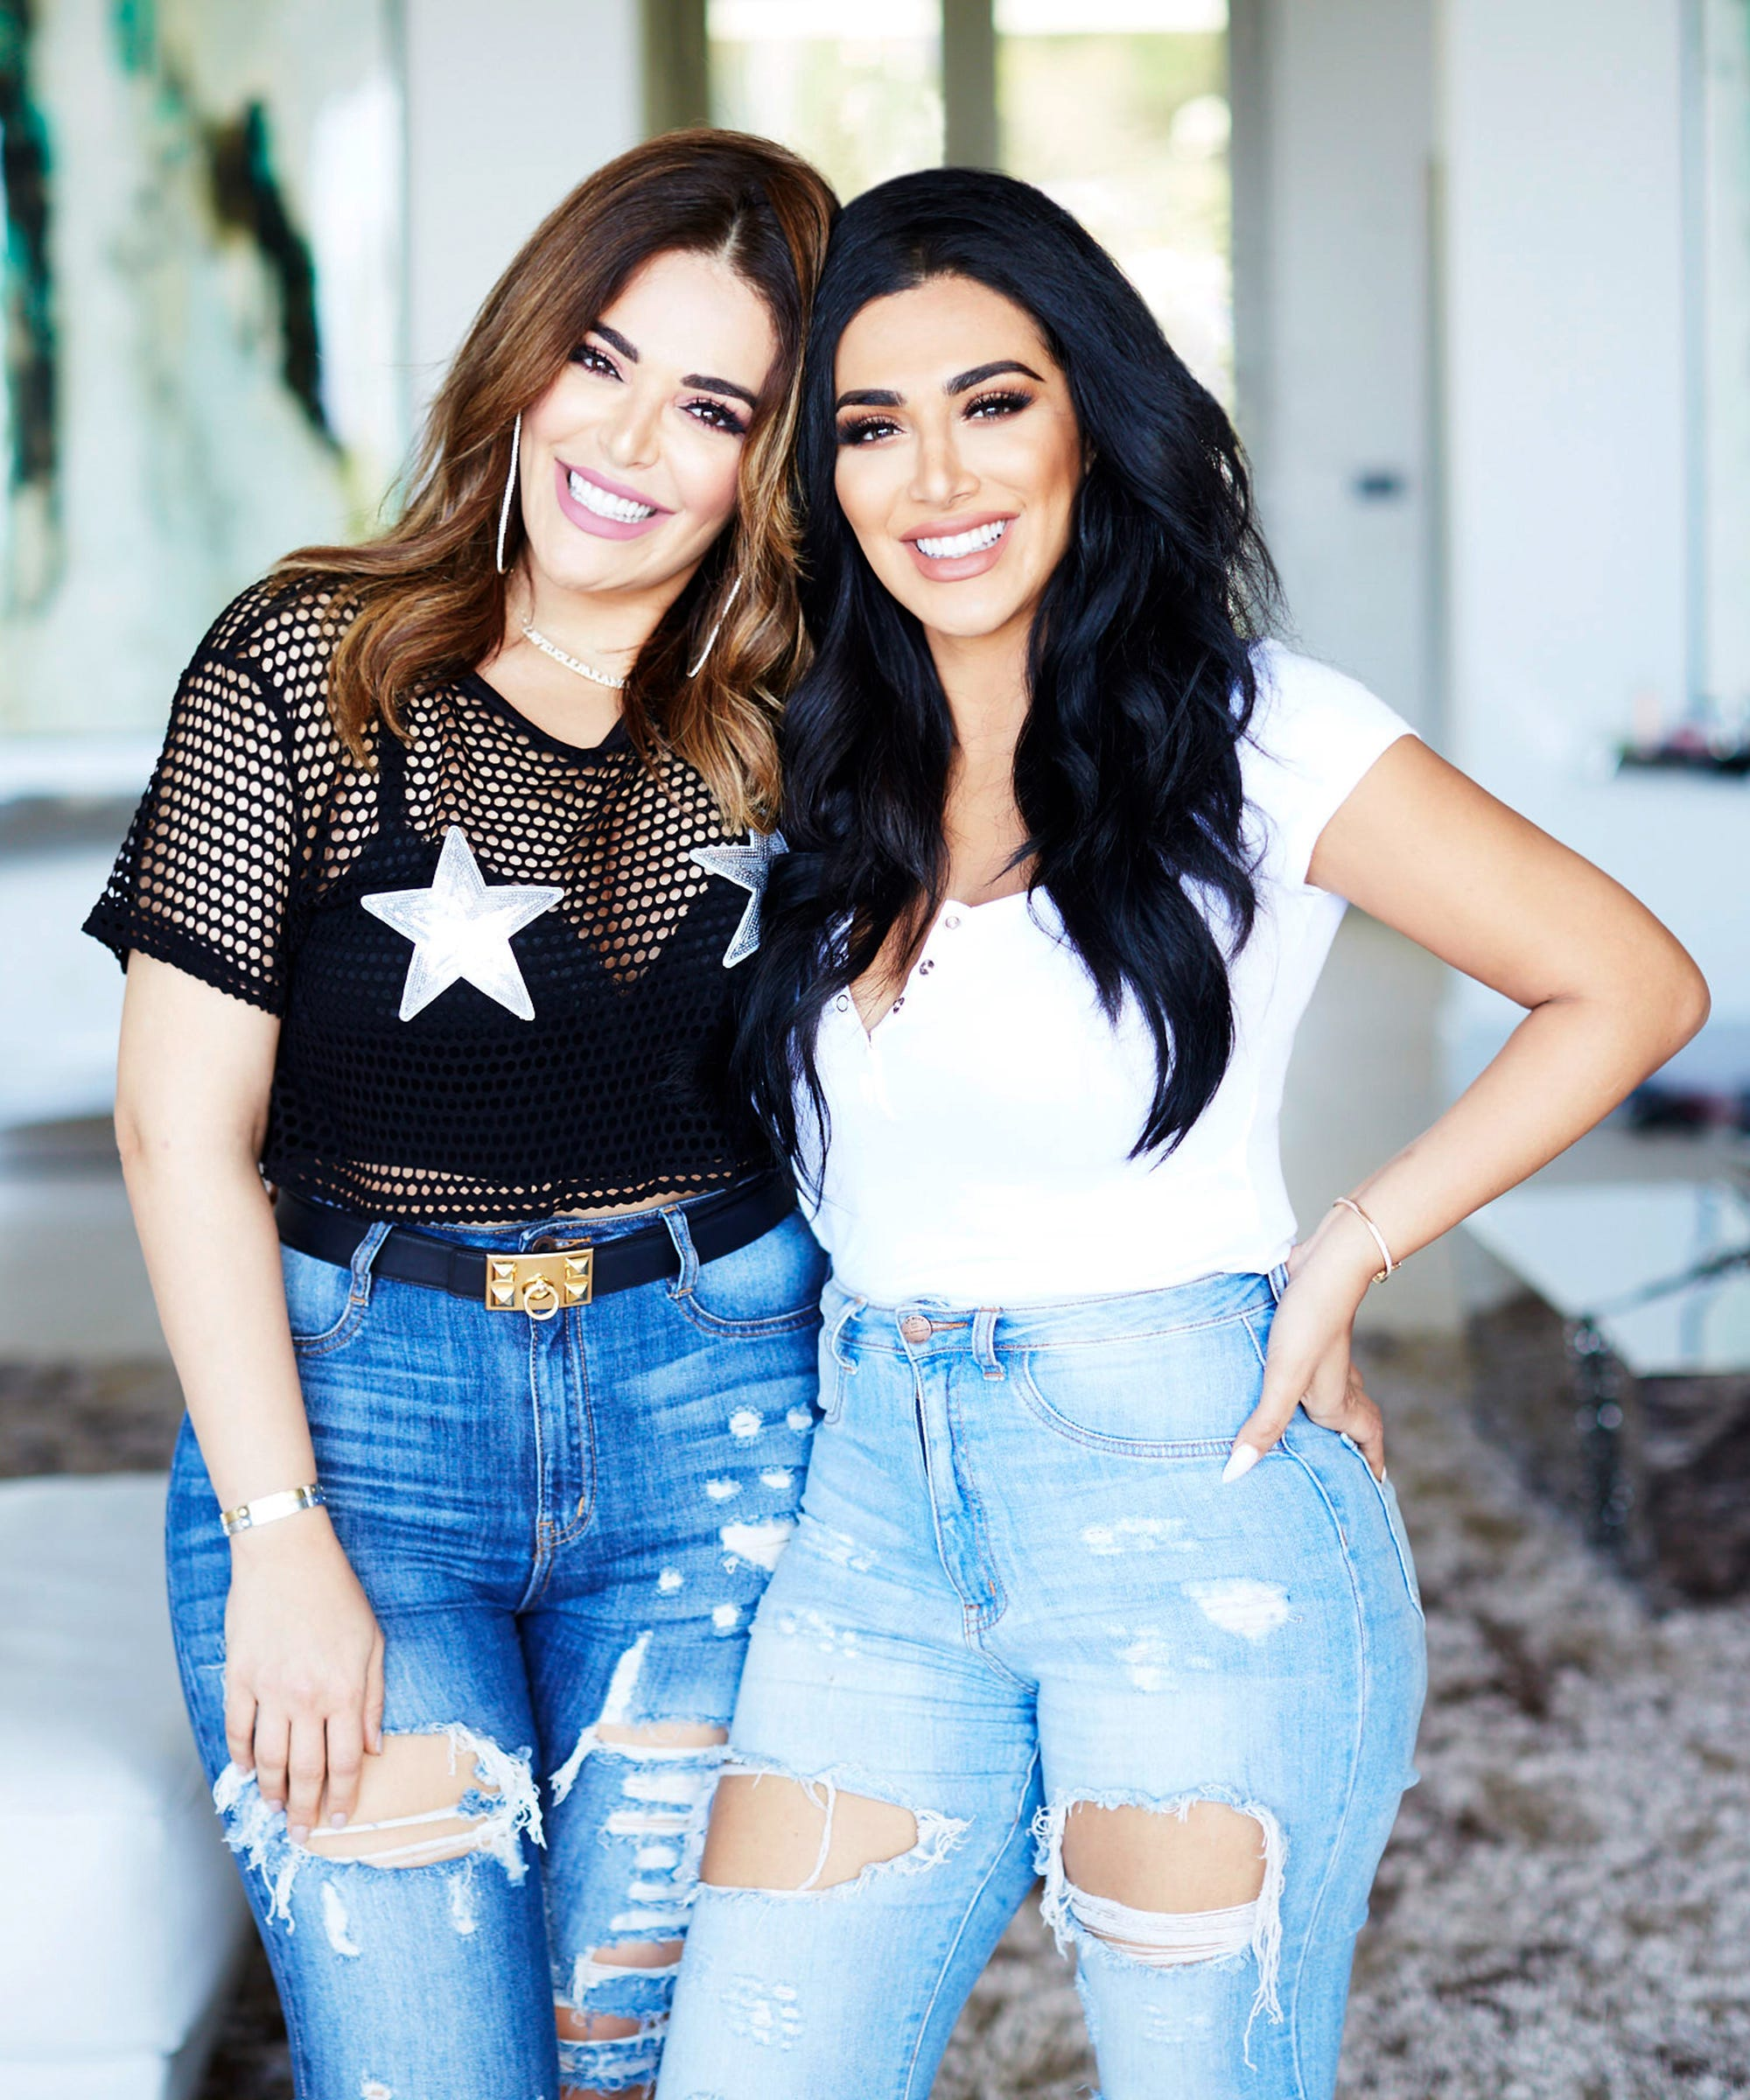 Huda Kattan's 7 Tips For Unplugging